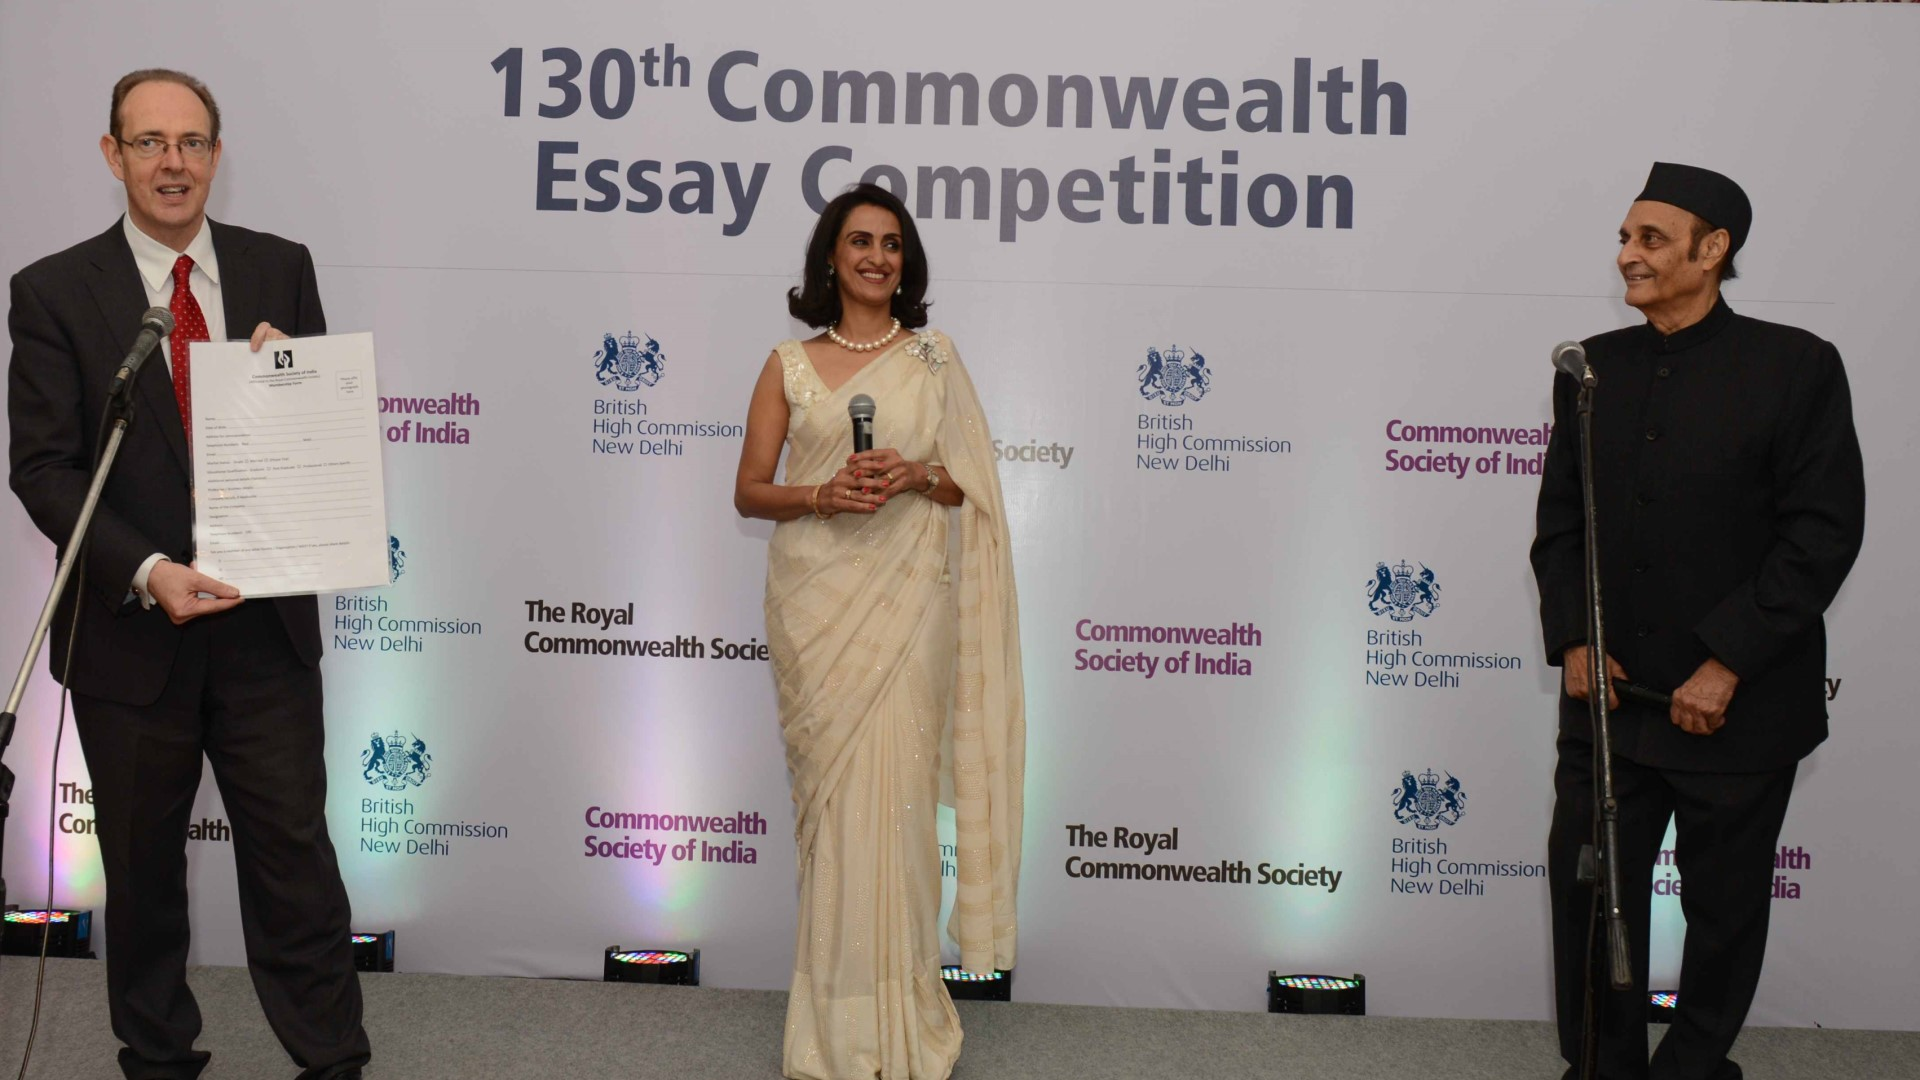 Shivani launched the Commonwealth Queen's Essay Competition with British High Commissioner to India Sir James Baven and former Union Cabinet Minister Karan Singh